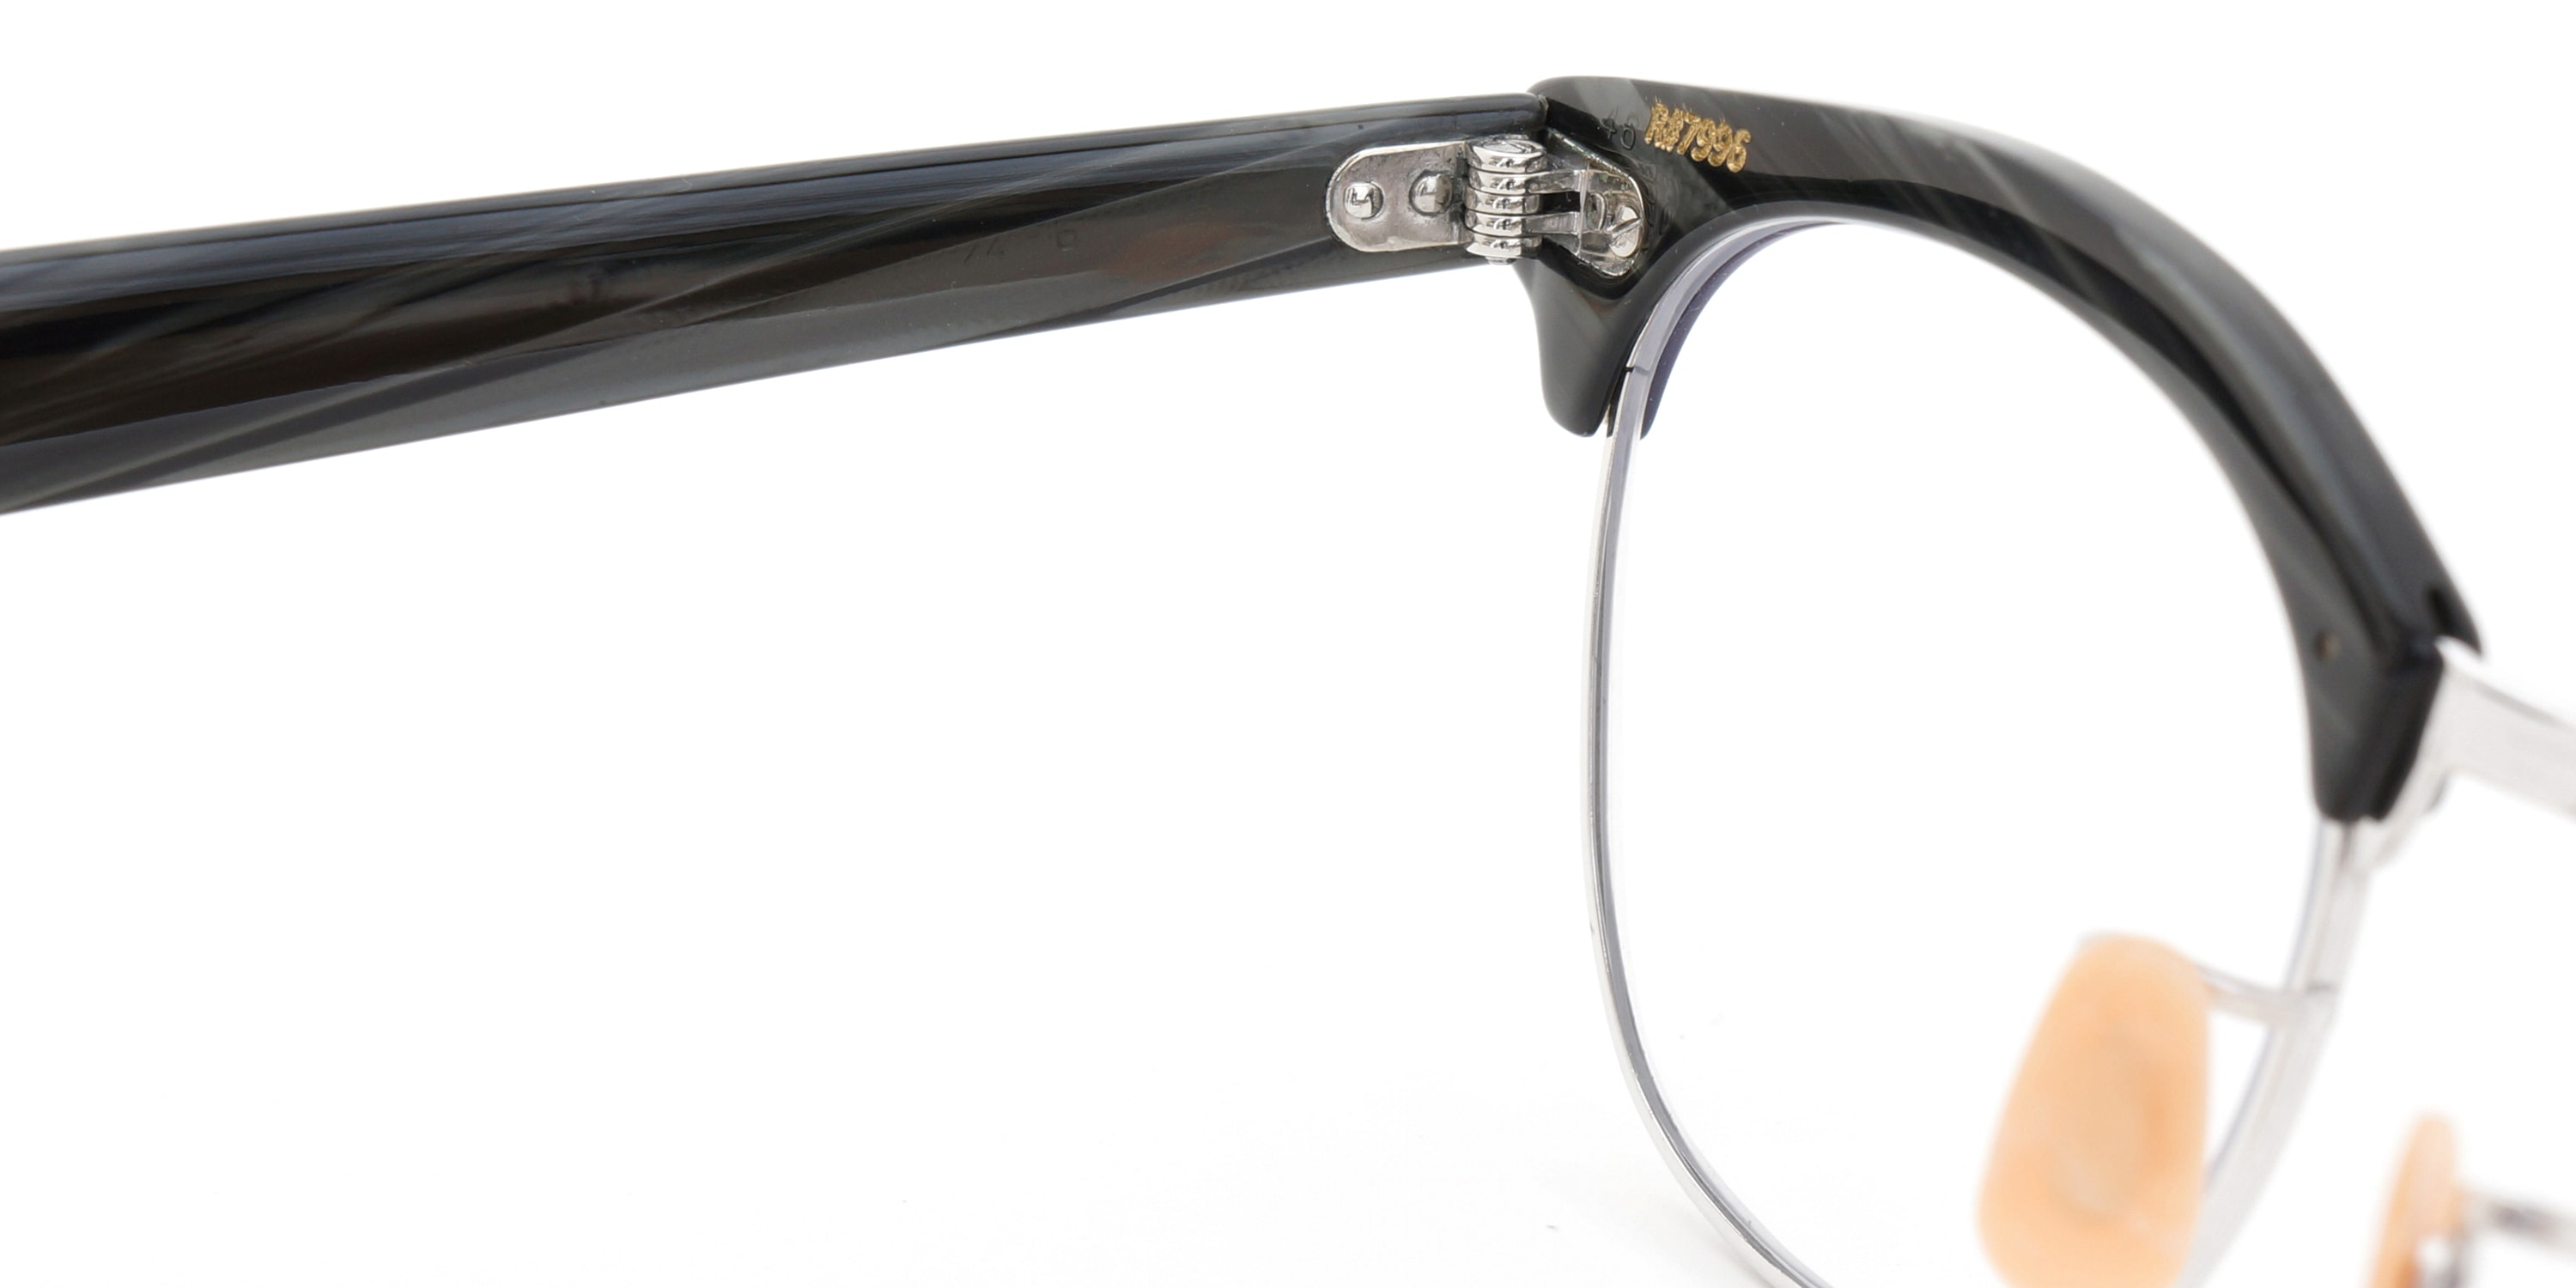 The Spectacle メガネ 1950s-1960s SHURON RONSIR Black-Stone WG 1/10 12KGF 46/20 イメージ11